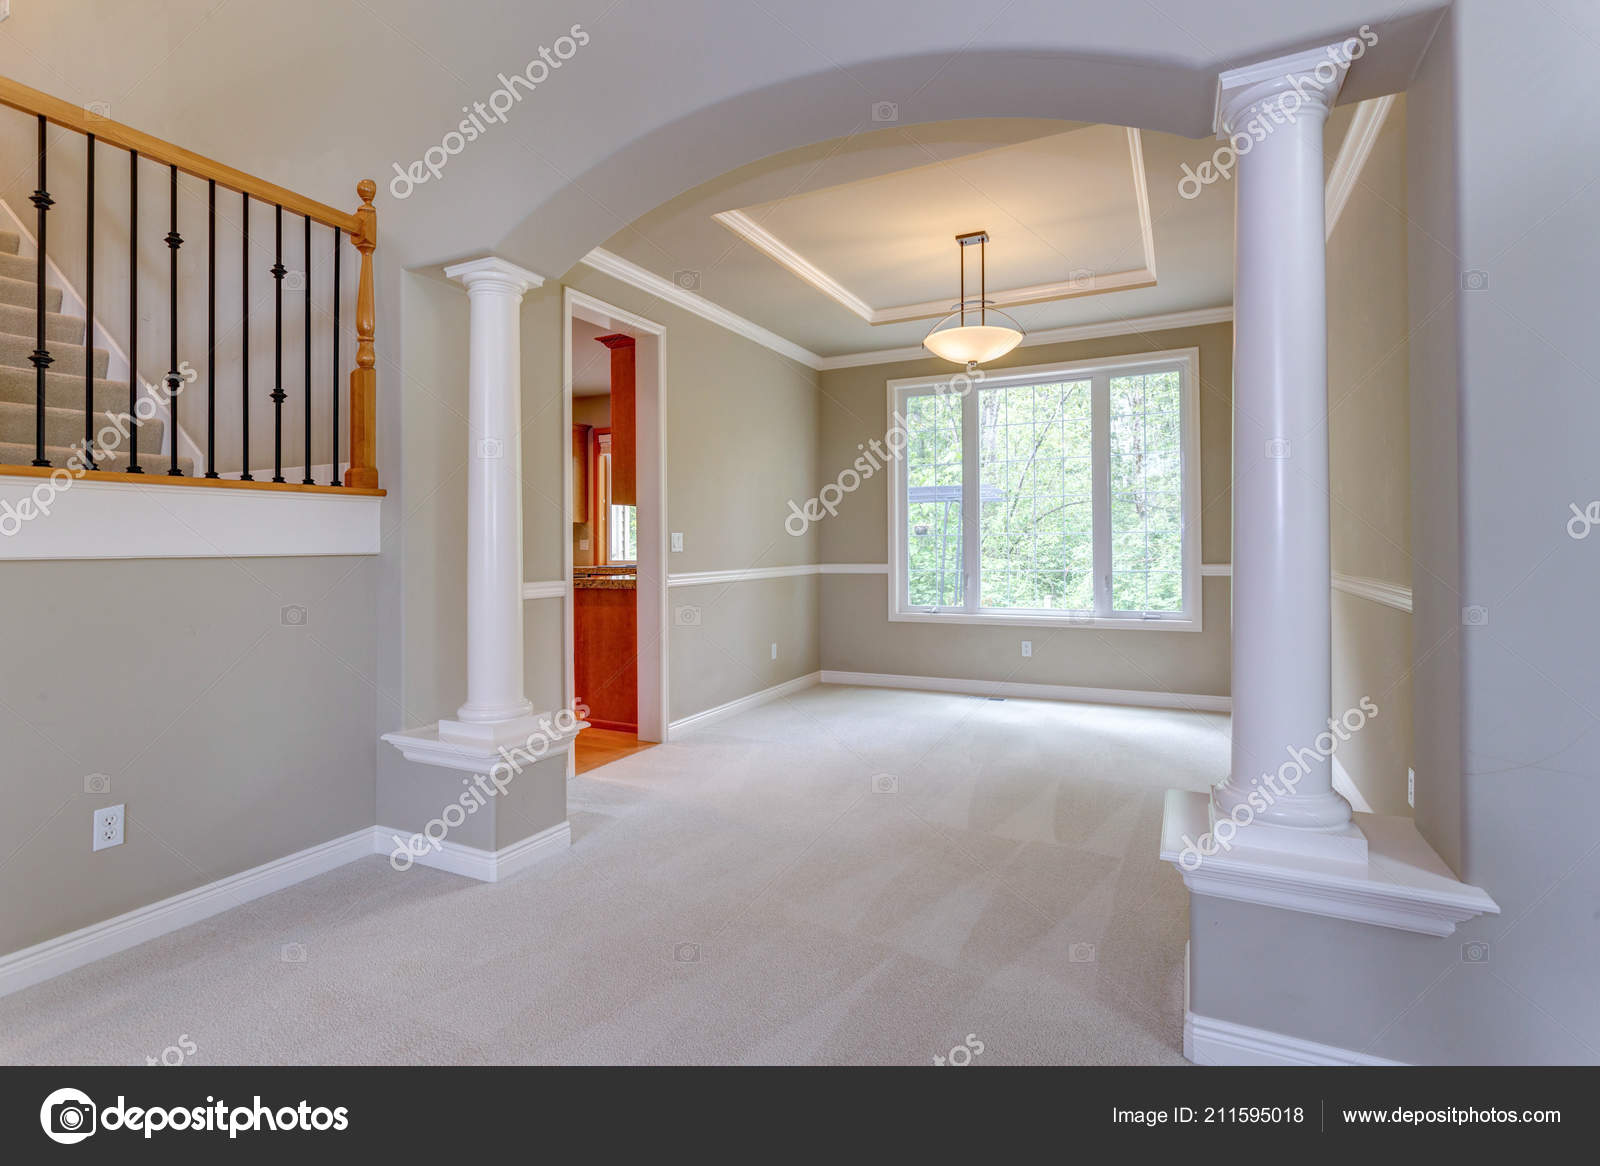 Elegant Arched Entryway Empty Dining Room Accented White Columns Stock Photo